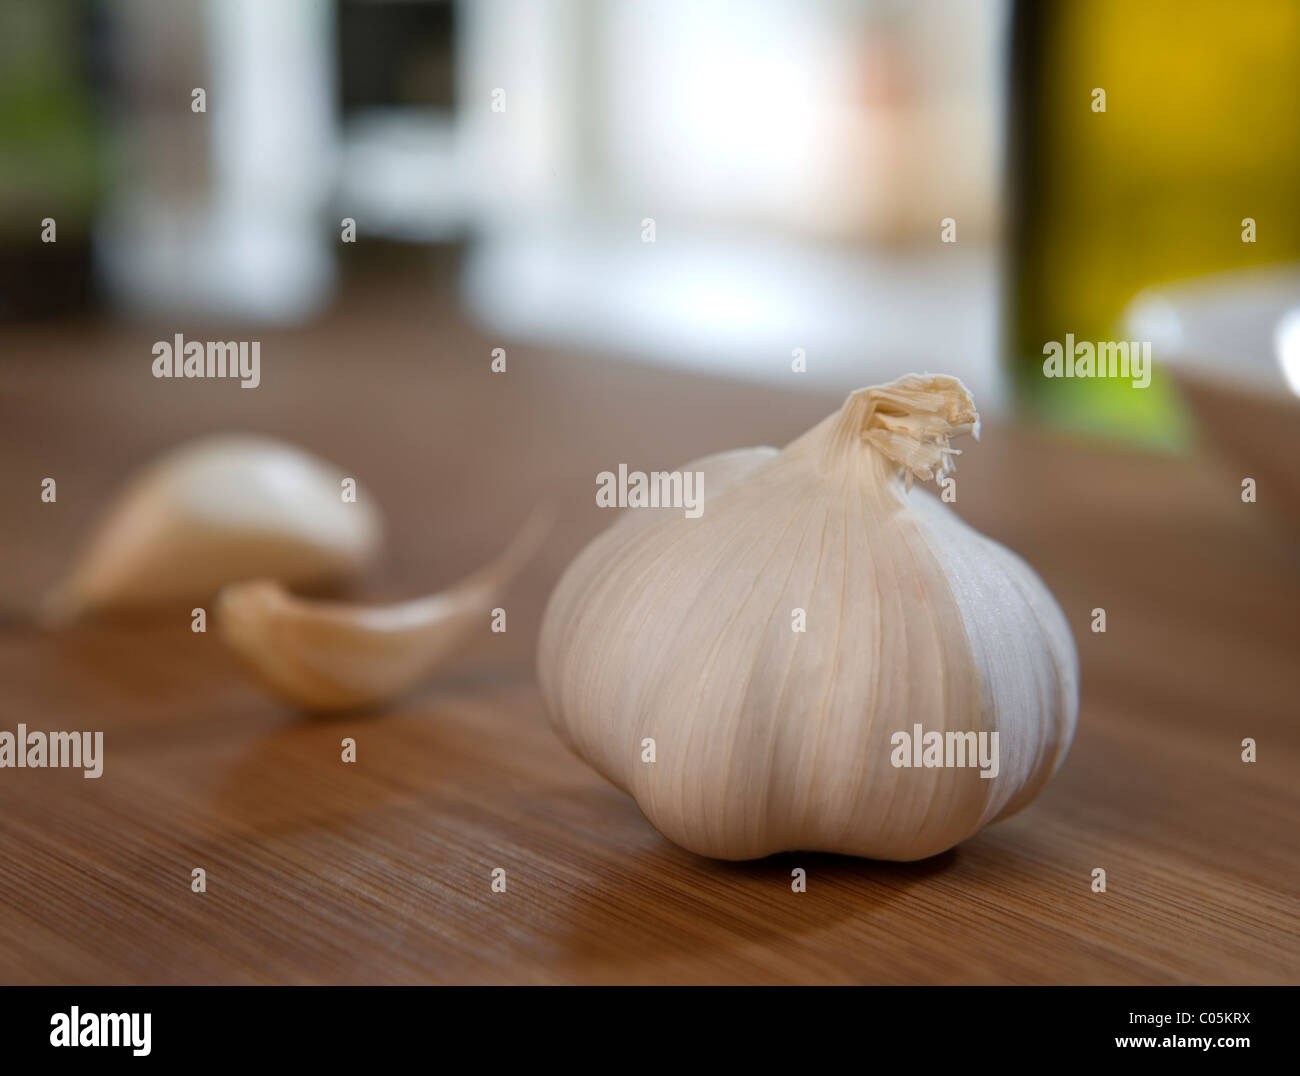 A head of garlic and 2 cloves on a cutting board - Stock Image